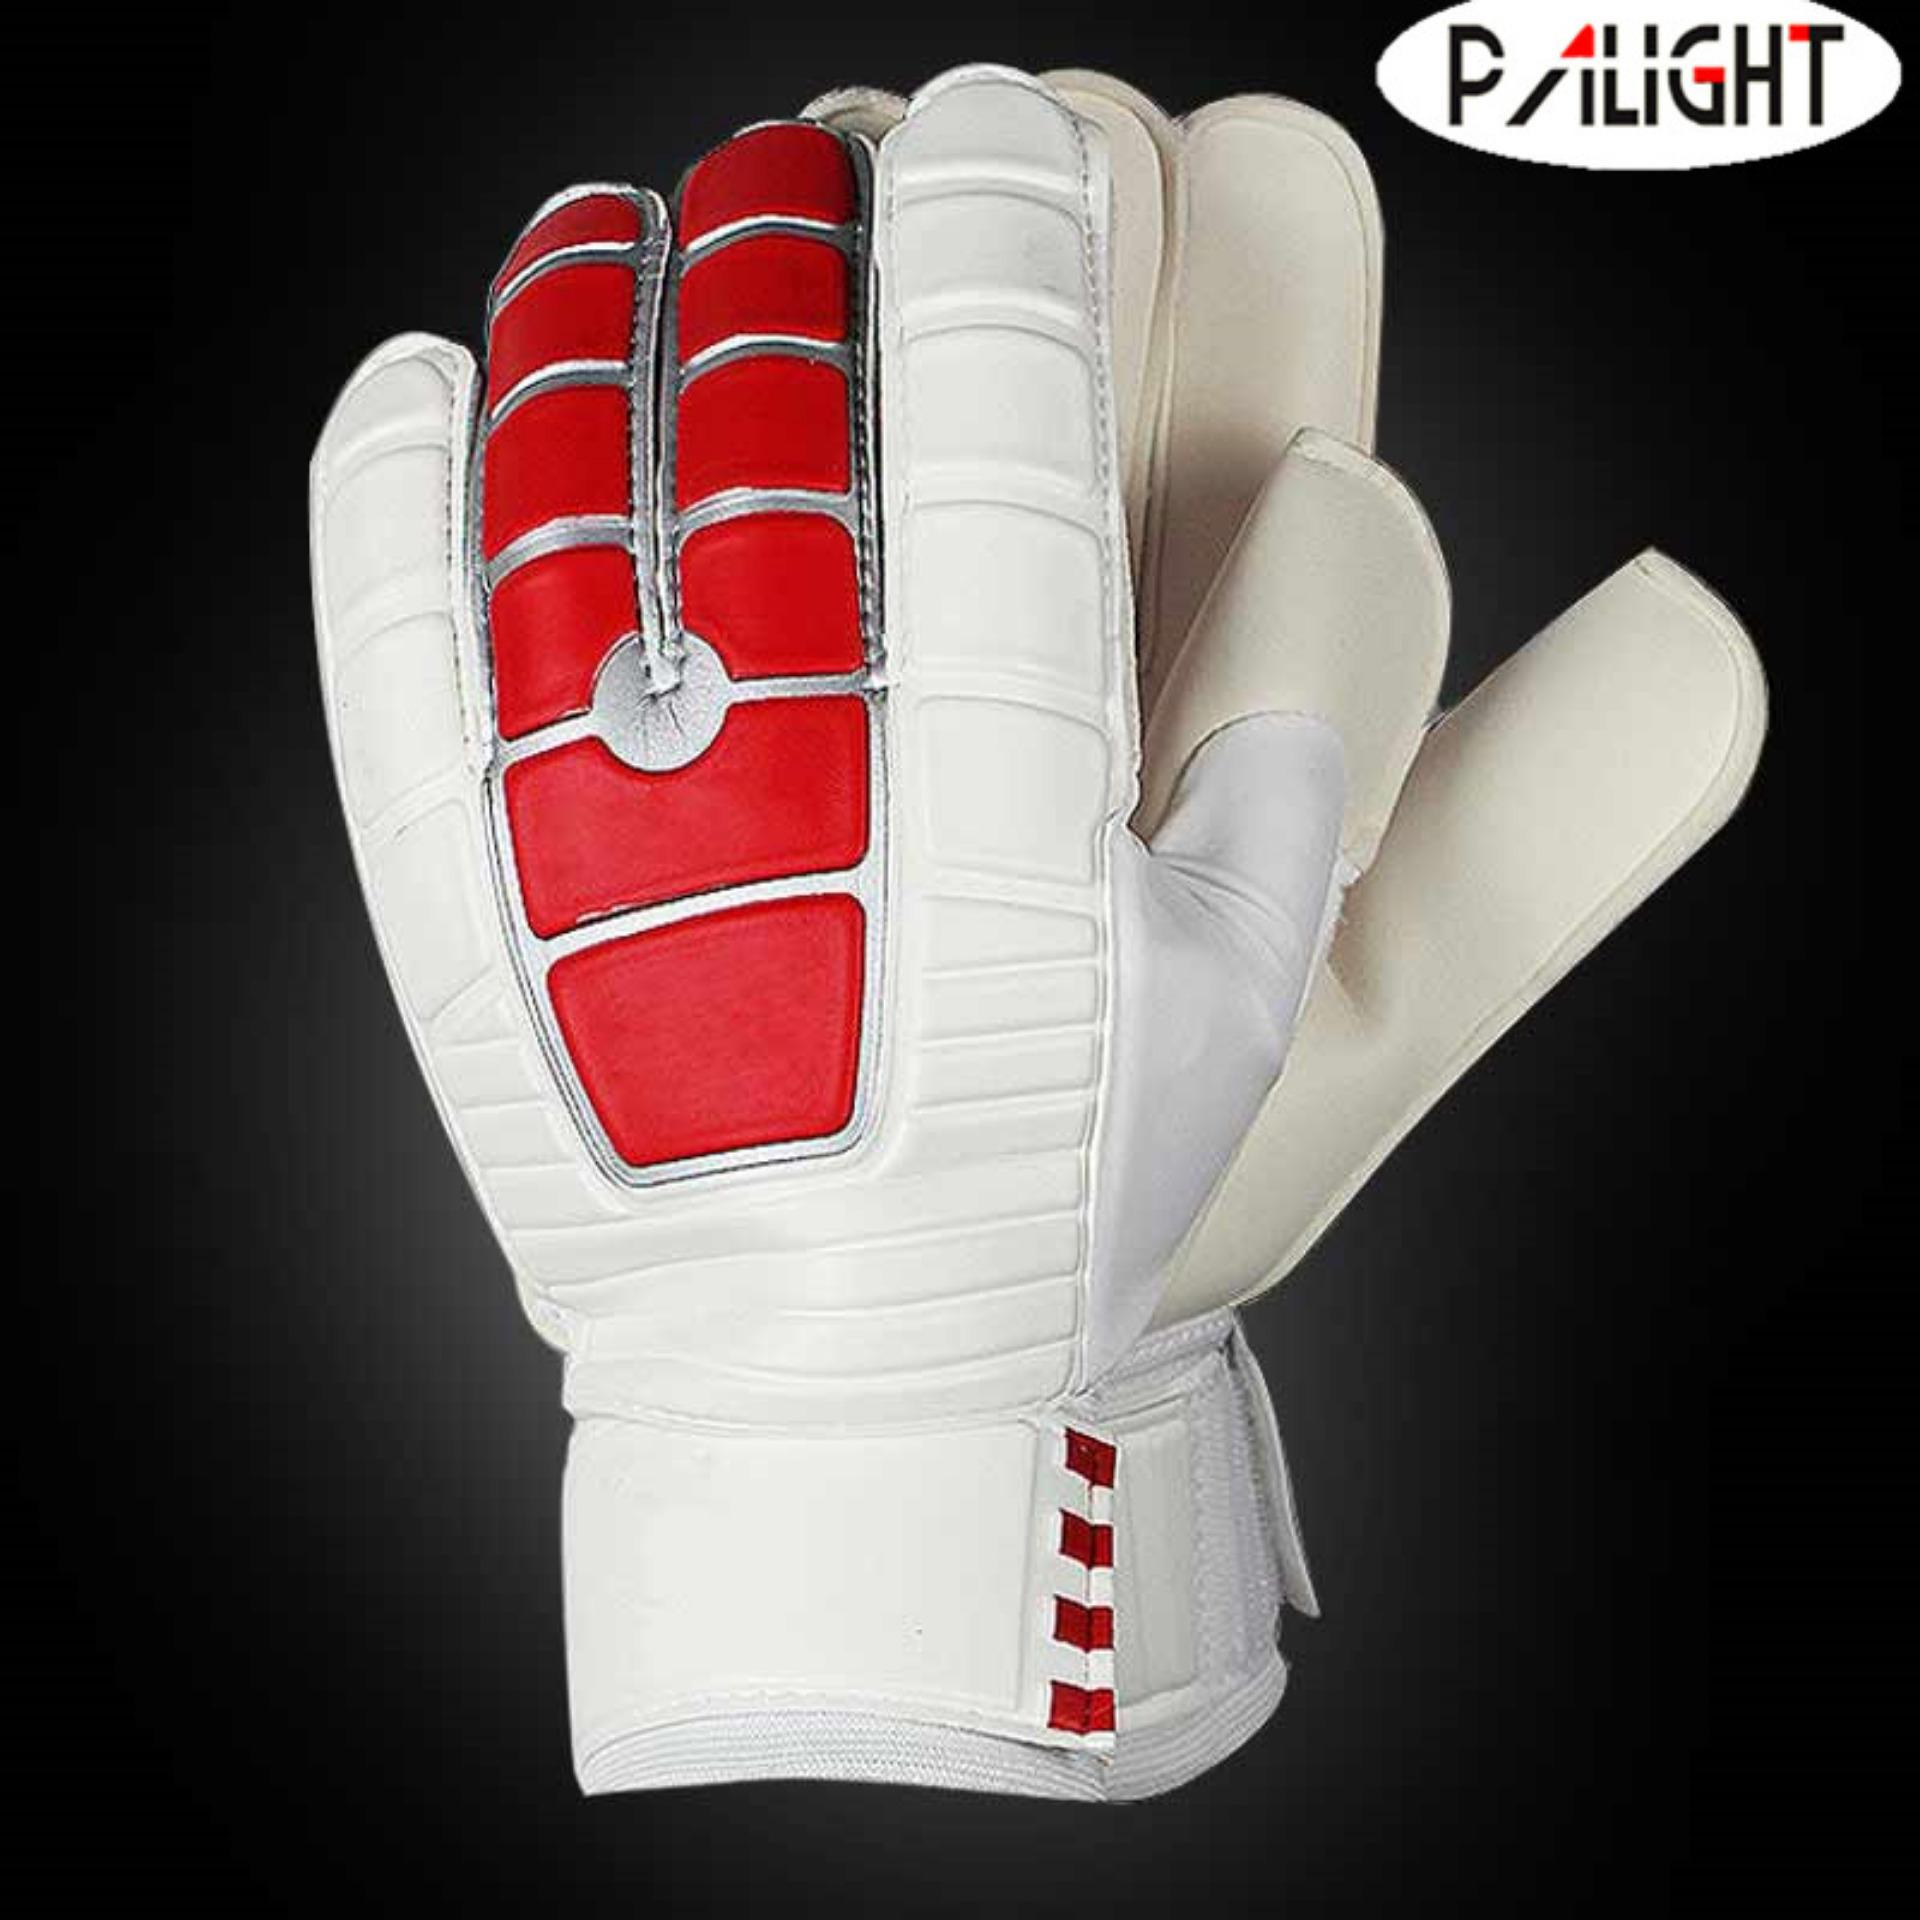 Palight Soccer Goalkeepers Latex Slip Gloves To Help You Make The Toughest Saves - Intl By Palight.